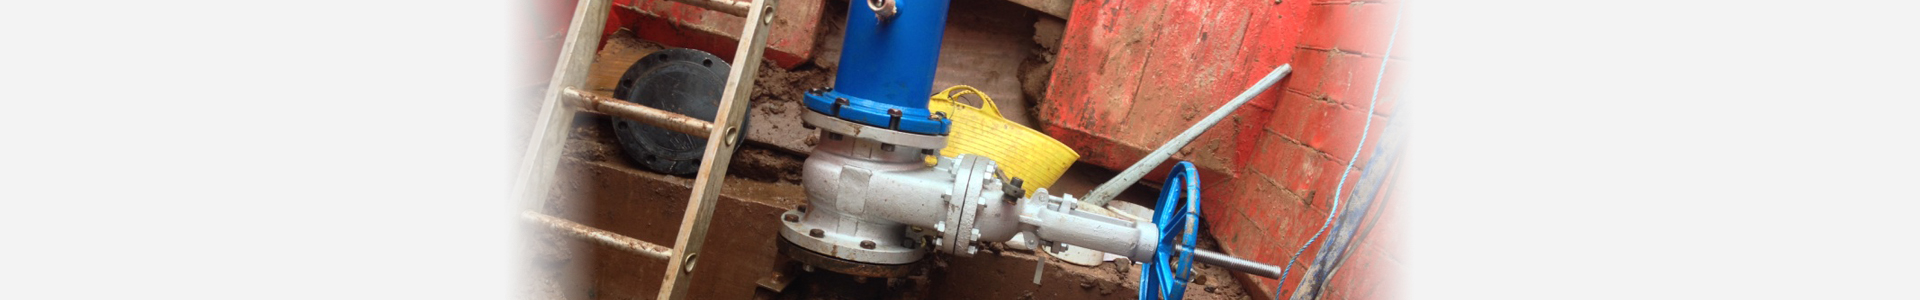 allied-pipe-freezing-services-ltd-services-linestopping